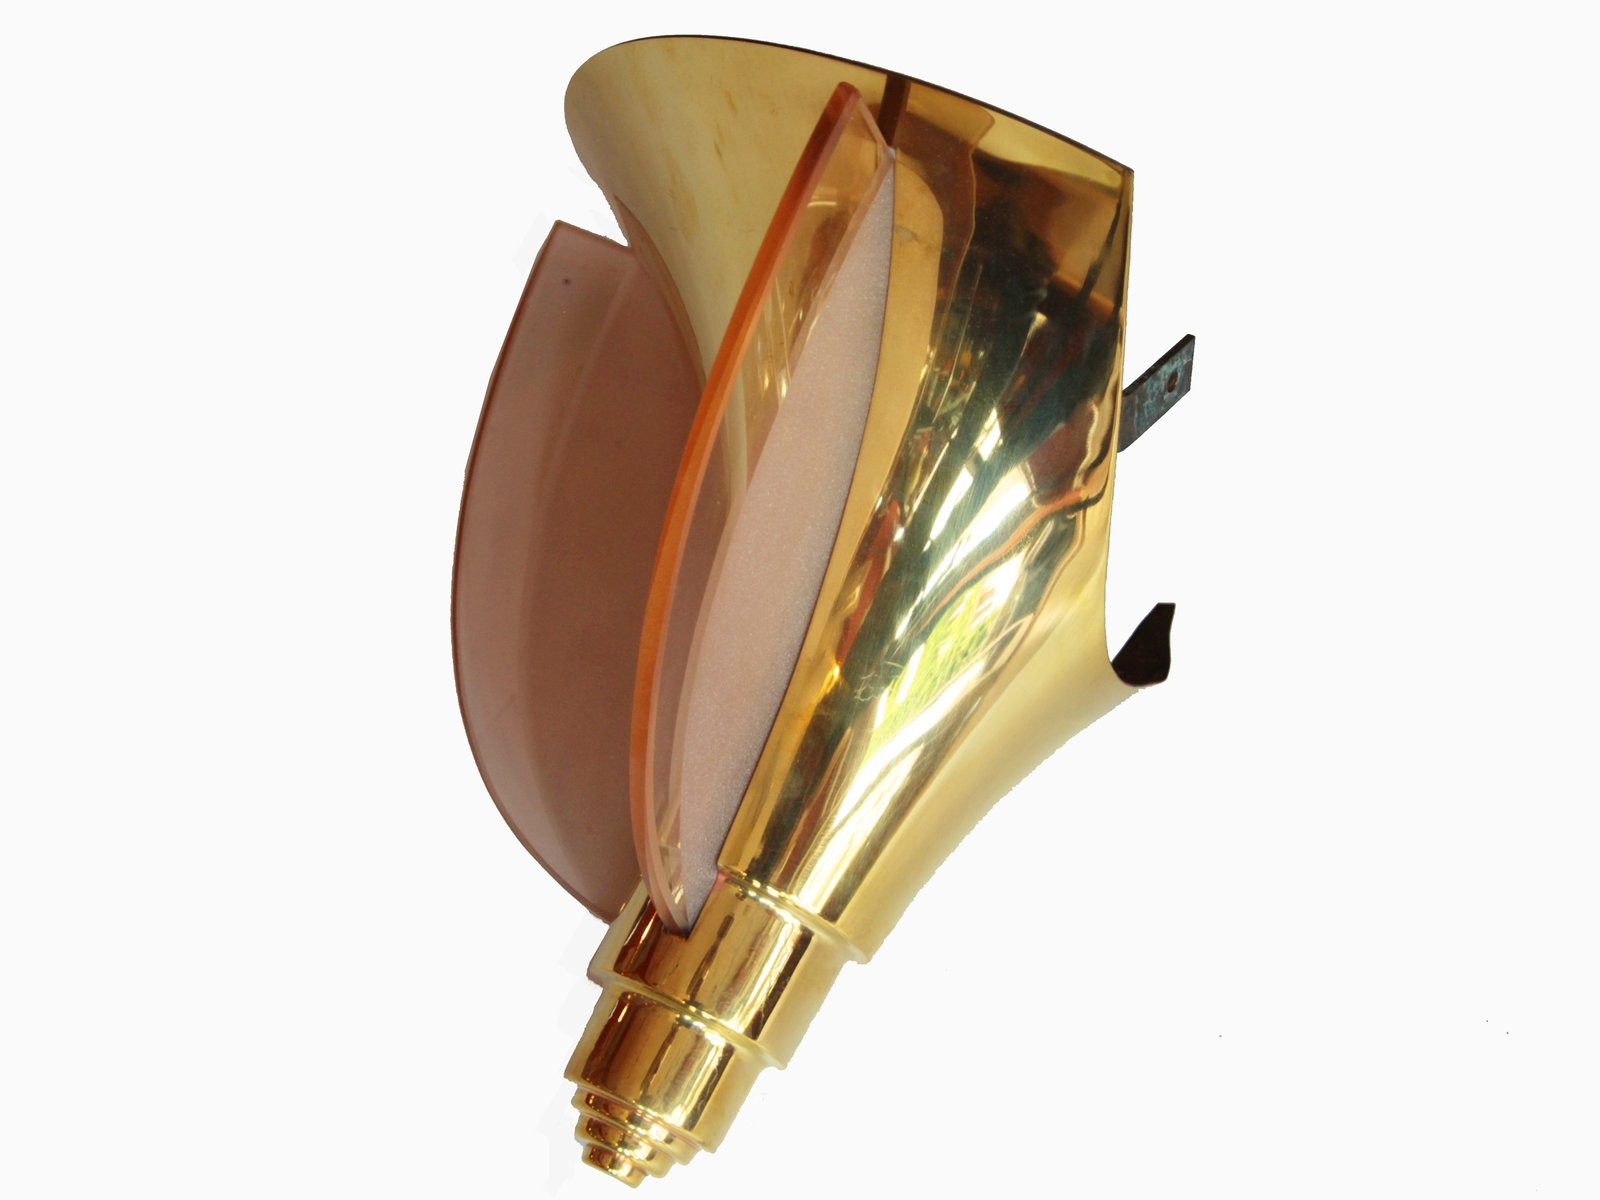 French Art Deco Corner Wall Light from Henri Petitot 1930s for